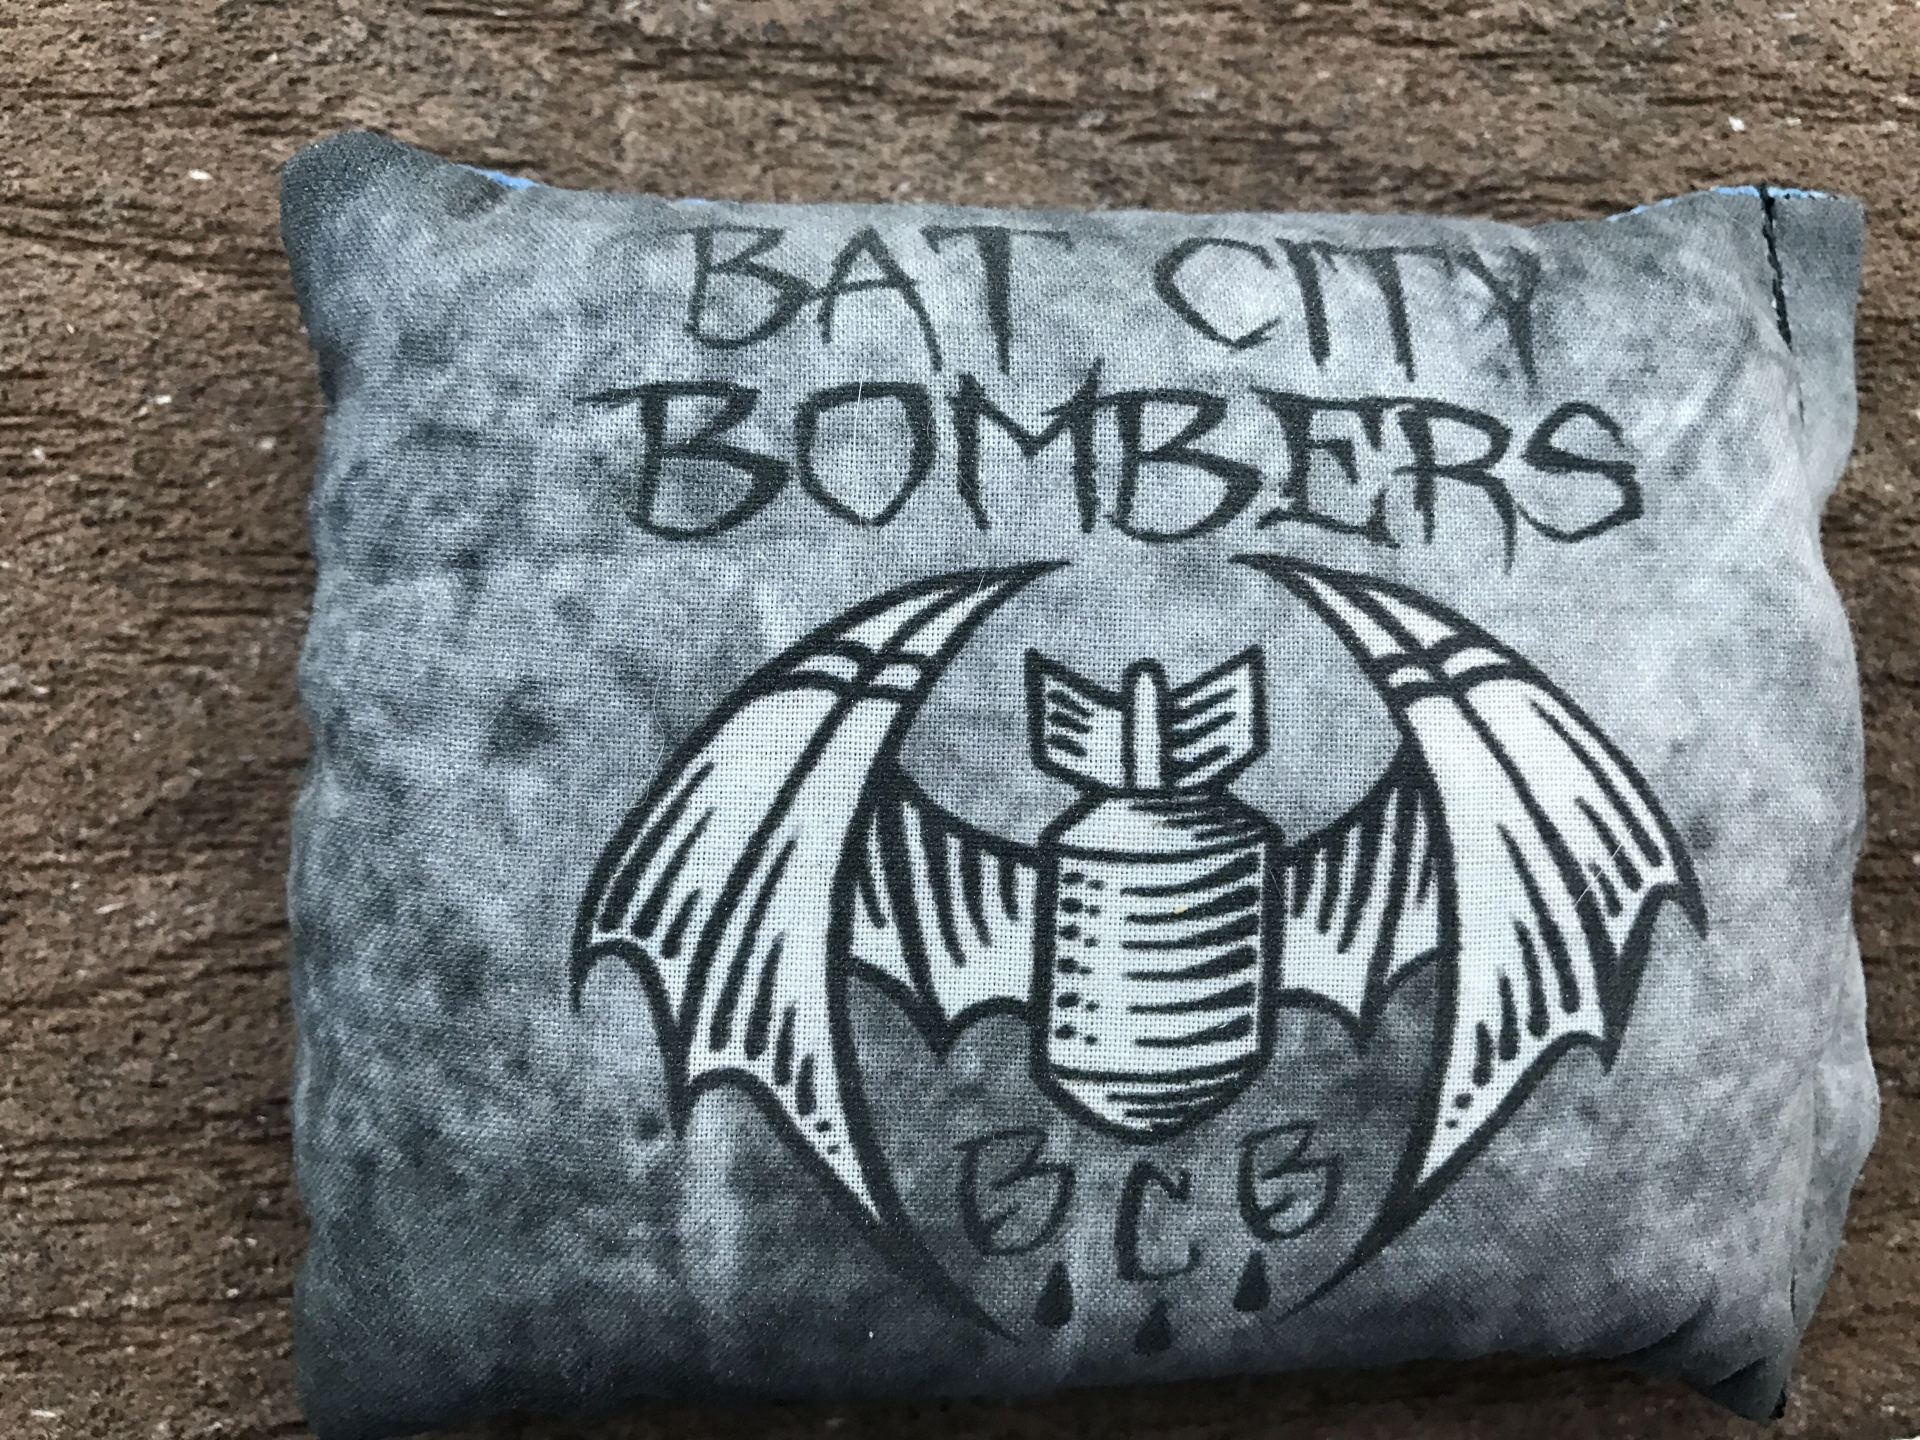 Bat City Bombers